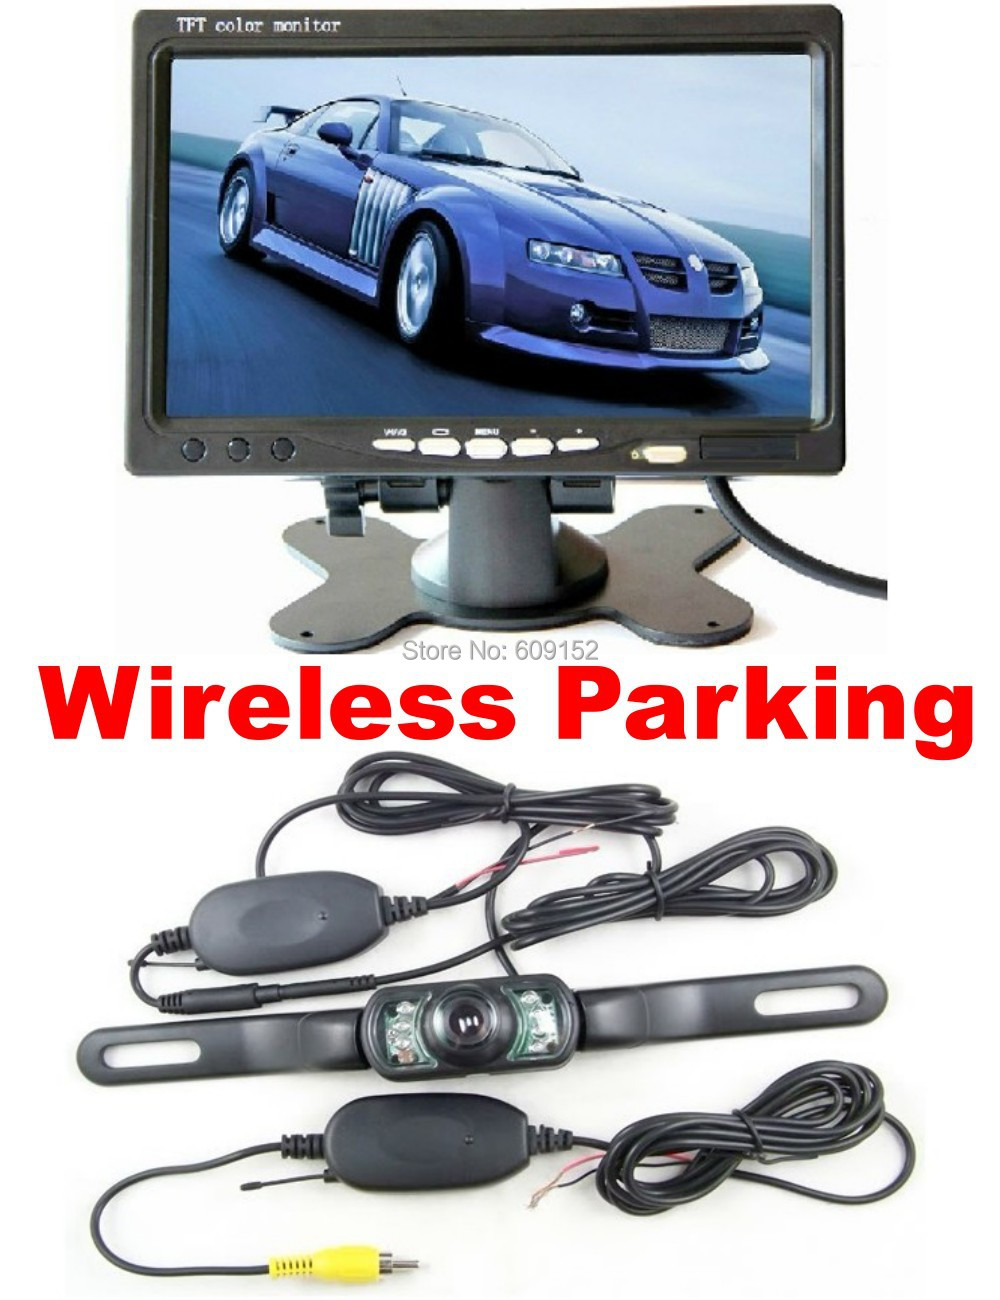 """1set 7"""" tft Monitor wireless rear view backup video parking reverse camera kit for Car Autos safety reversing(China (Mainland))"""